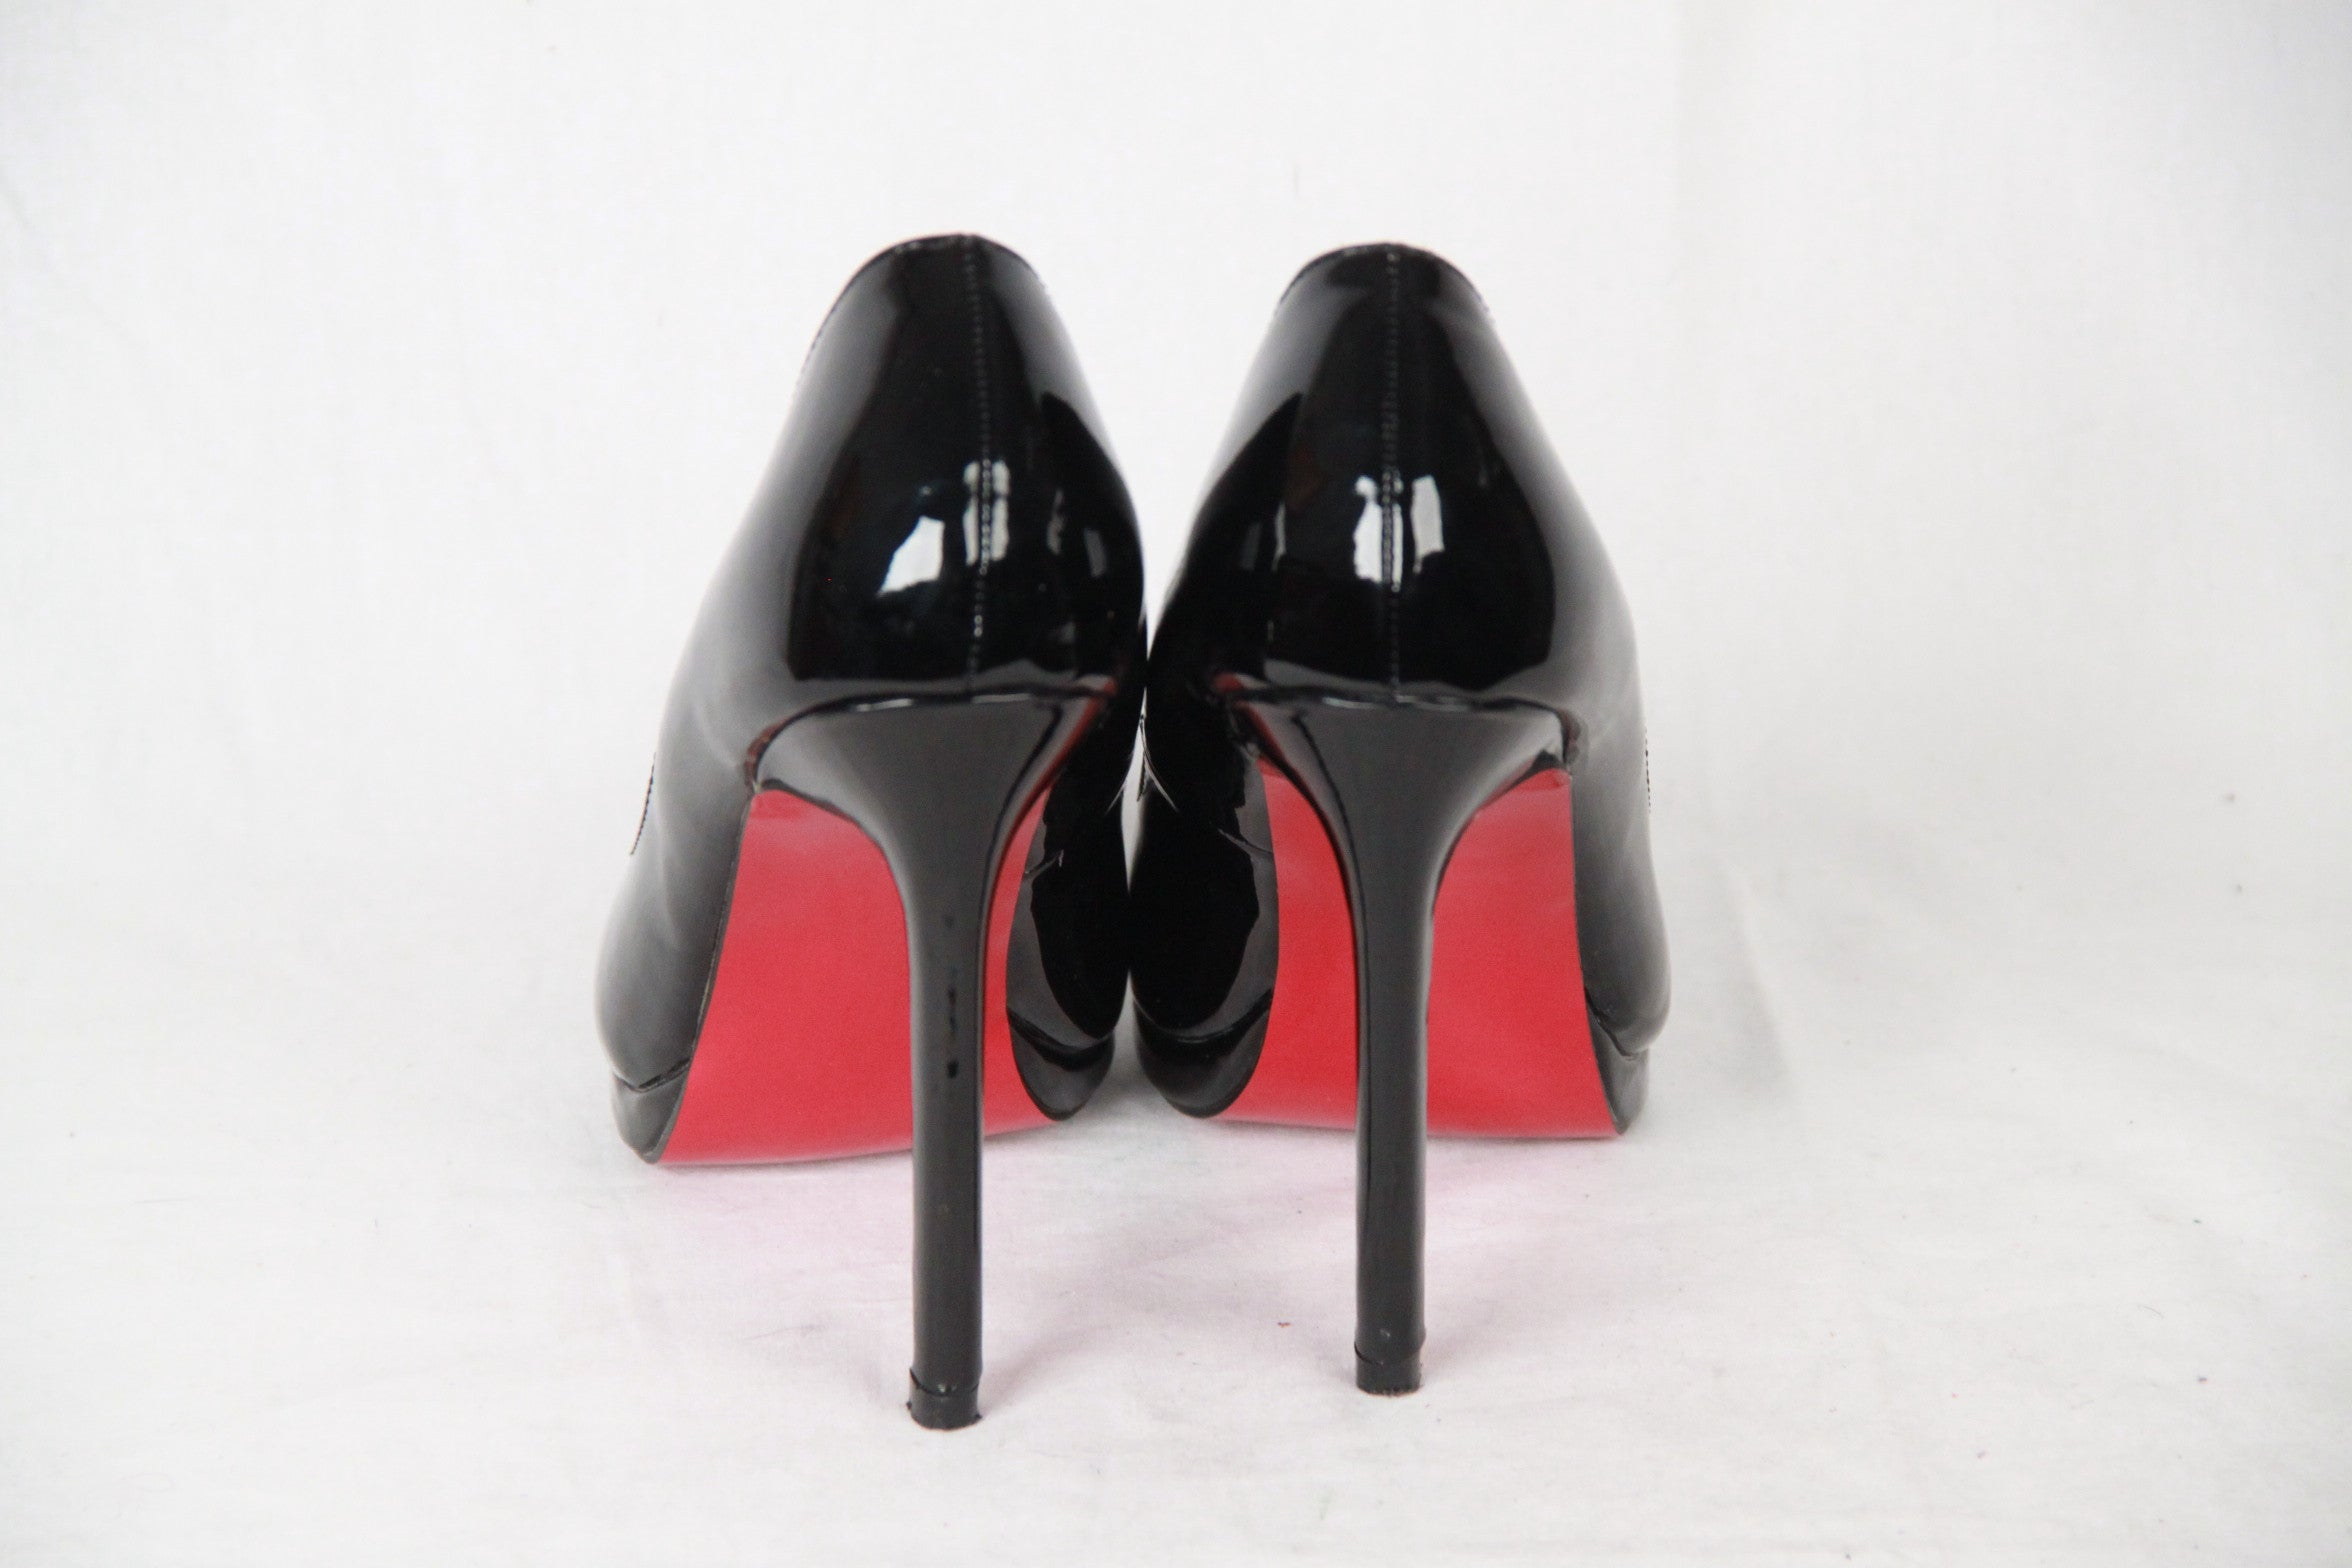 quality design f6e1b be043 CHRISTIAN LOUBOUTIN Black Patent Leather PIGALLE PLATO Heels 37